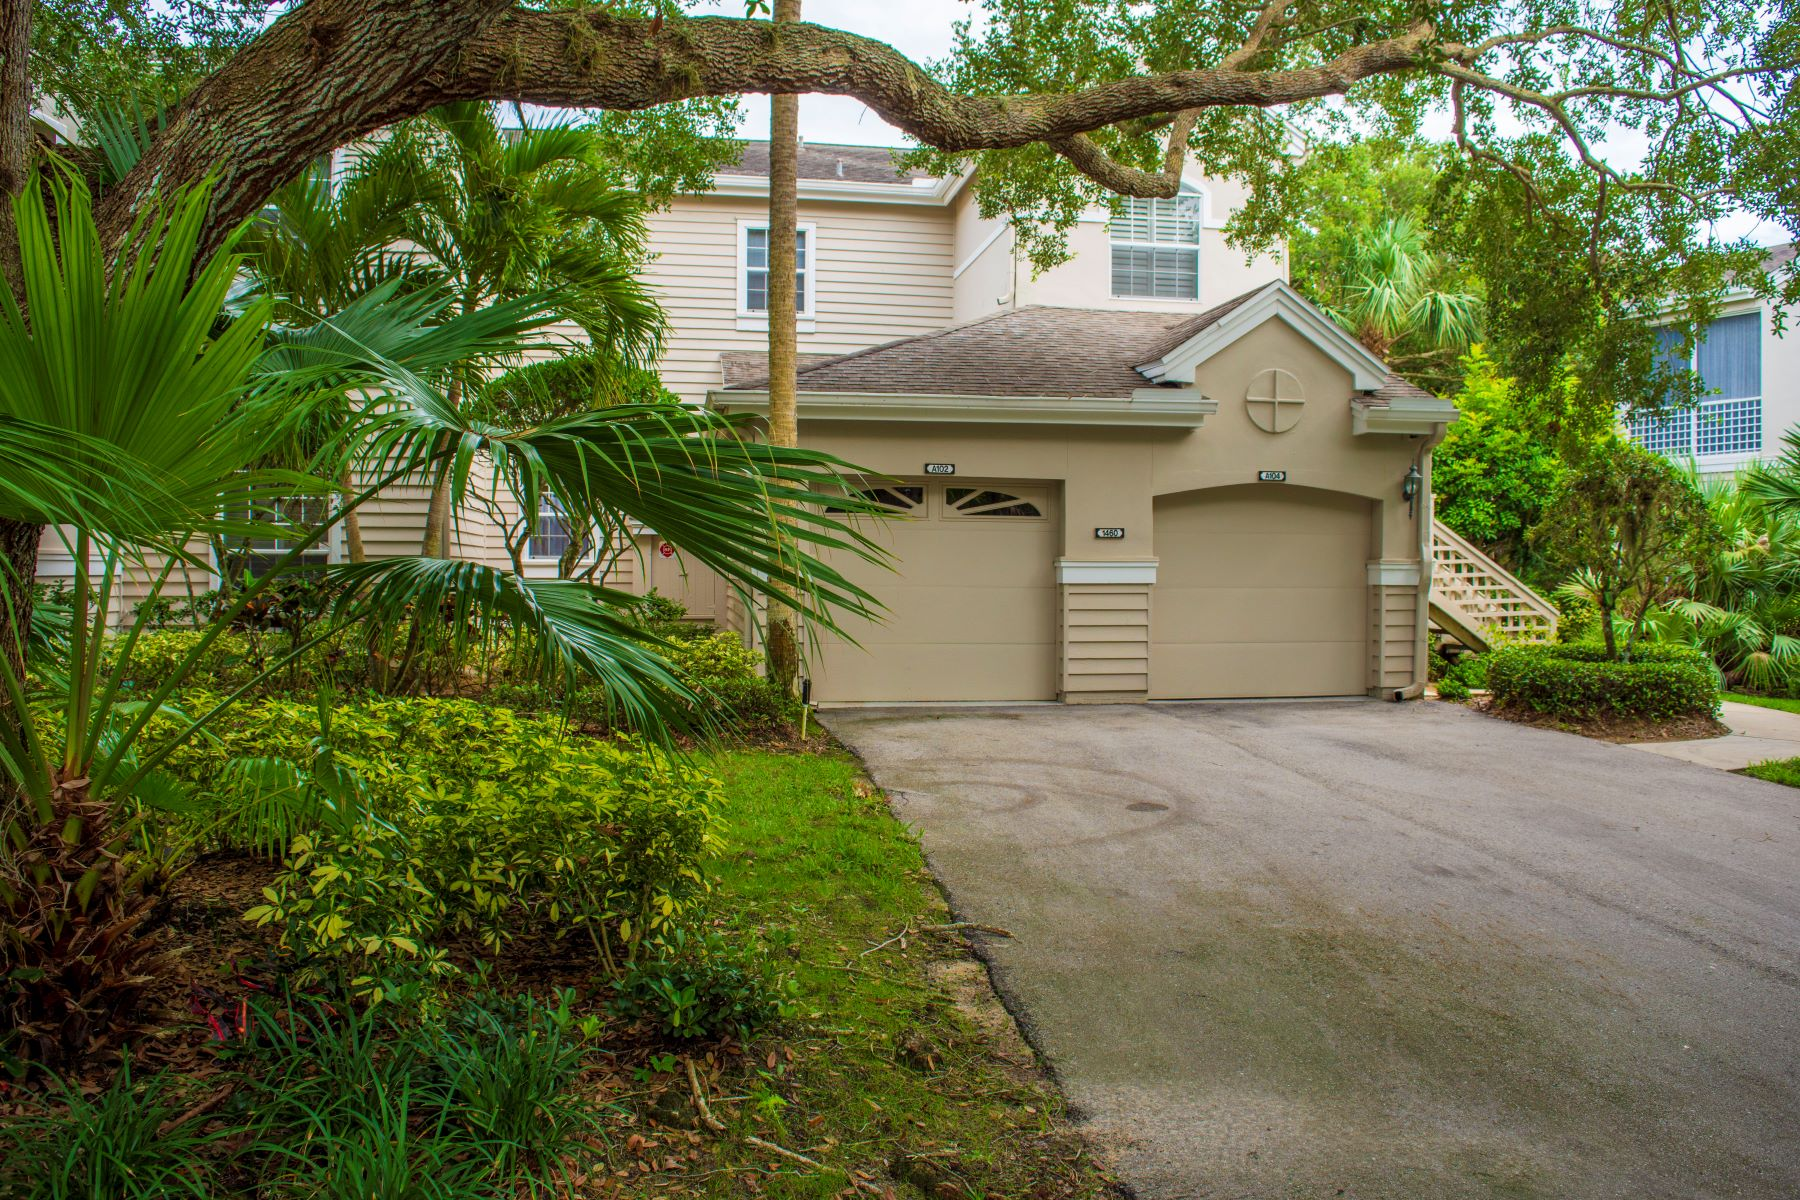 for Sale at 1460 Winding Oaks Circle W, #A102, Vero Beach, FL 1460 Winding Oaks Circle W, A102 Vero Beach, Florida 32963 United States